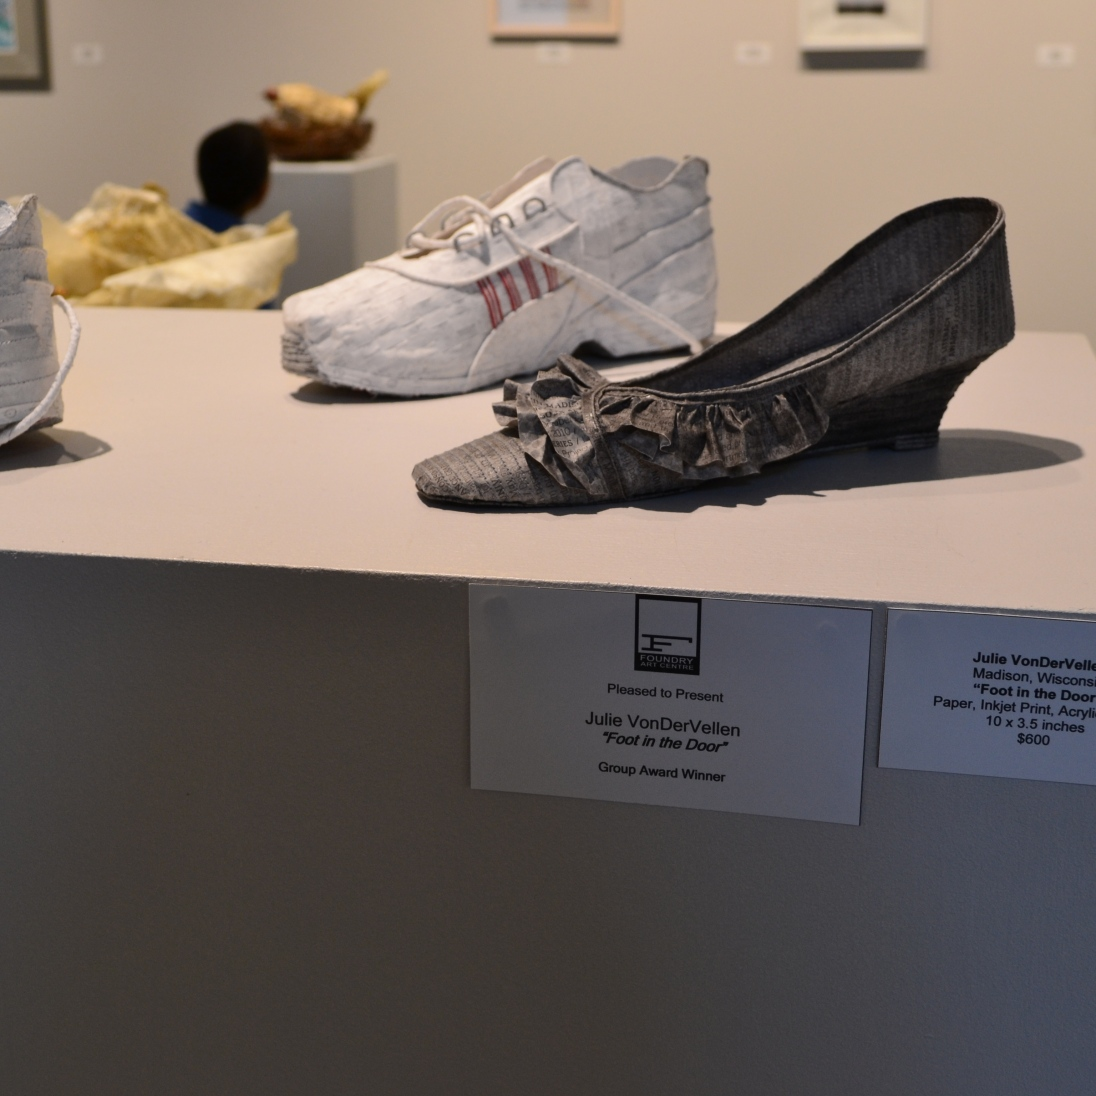 These shows were in an exhibit that requried all the artwork to be made on or of paper. So these shoes are made from paper!